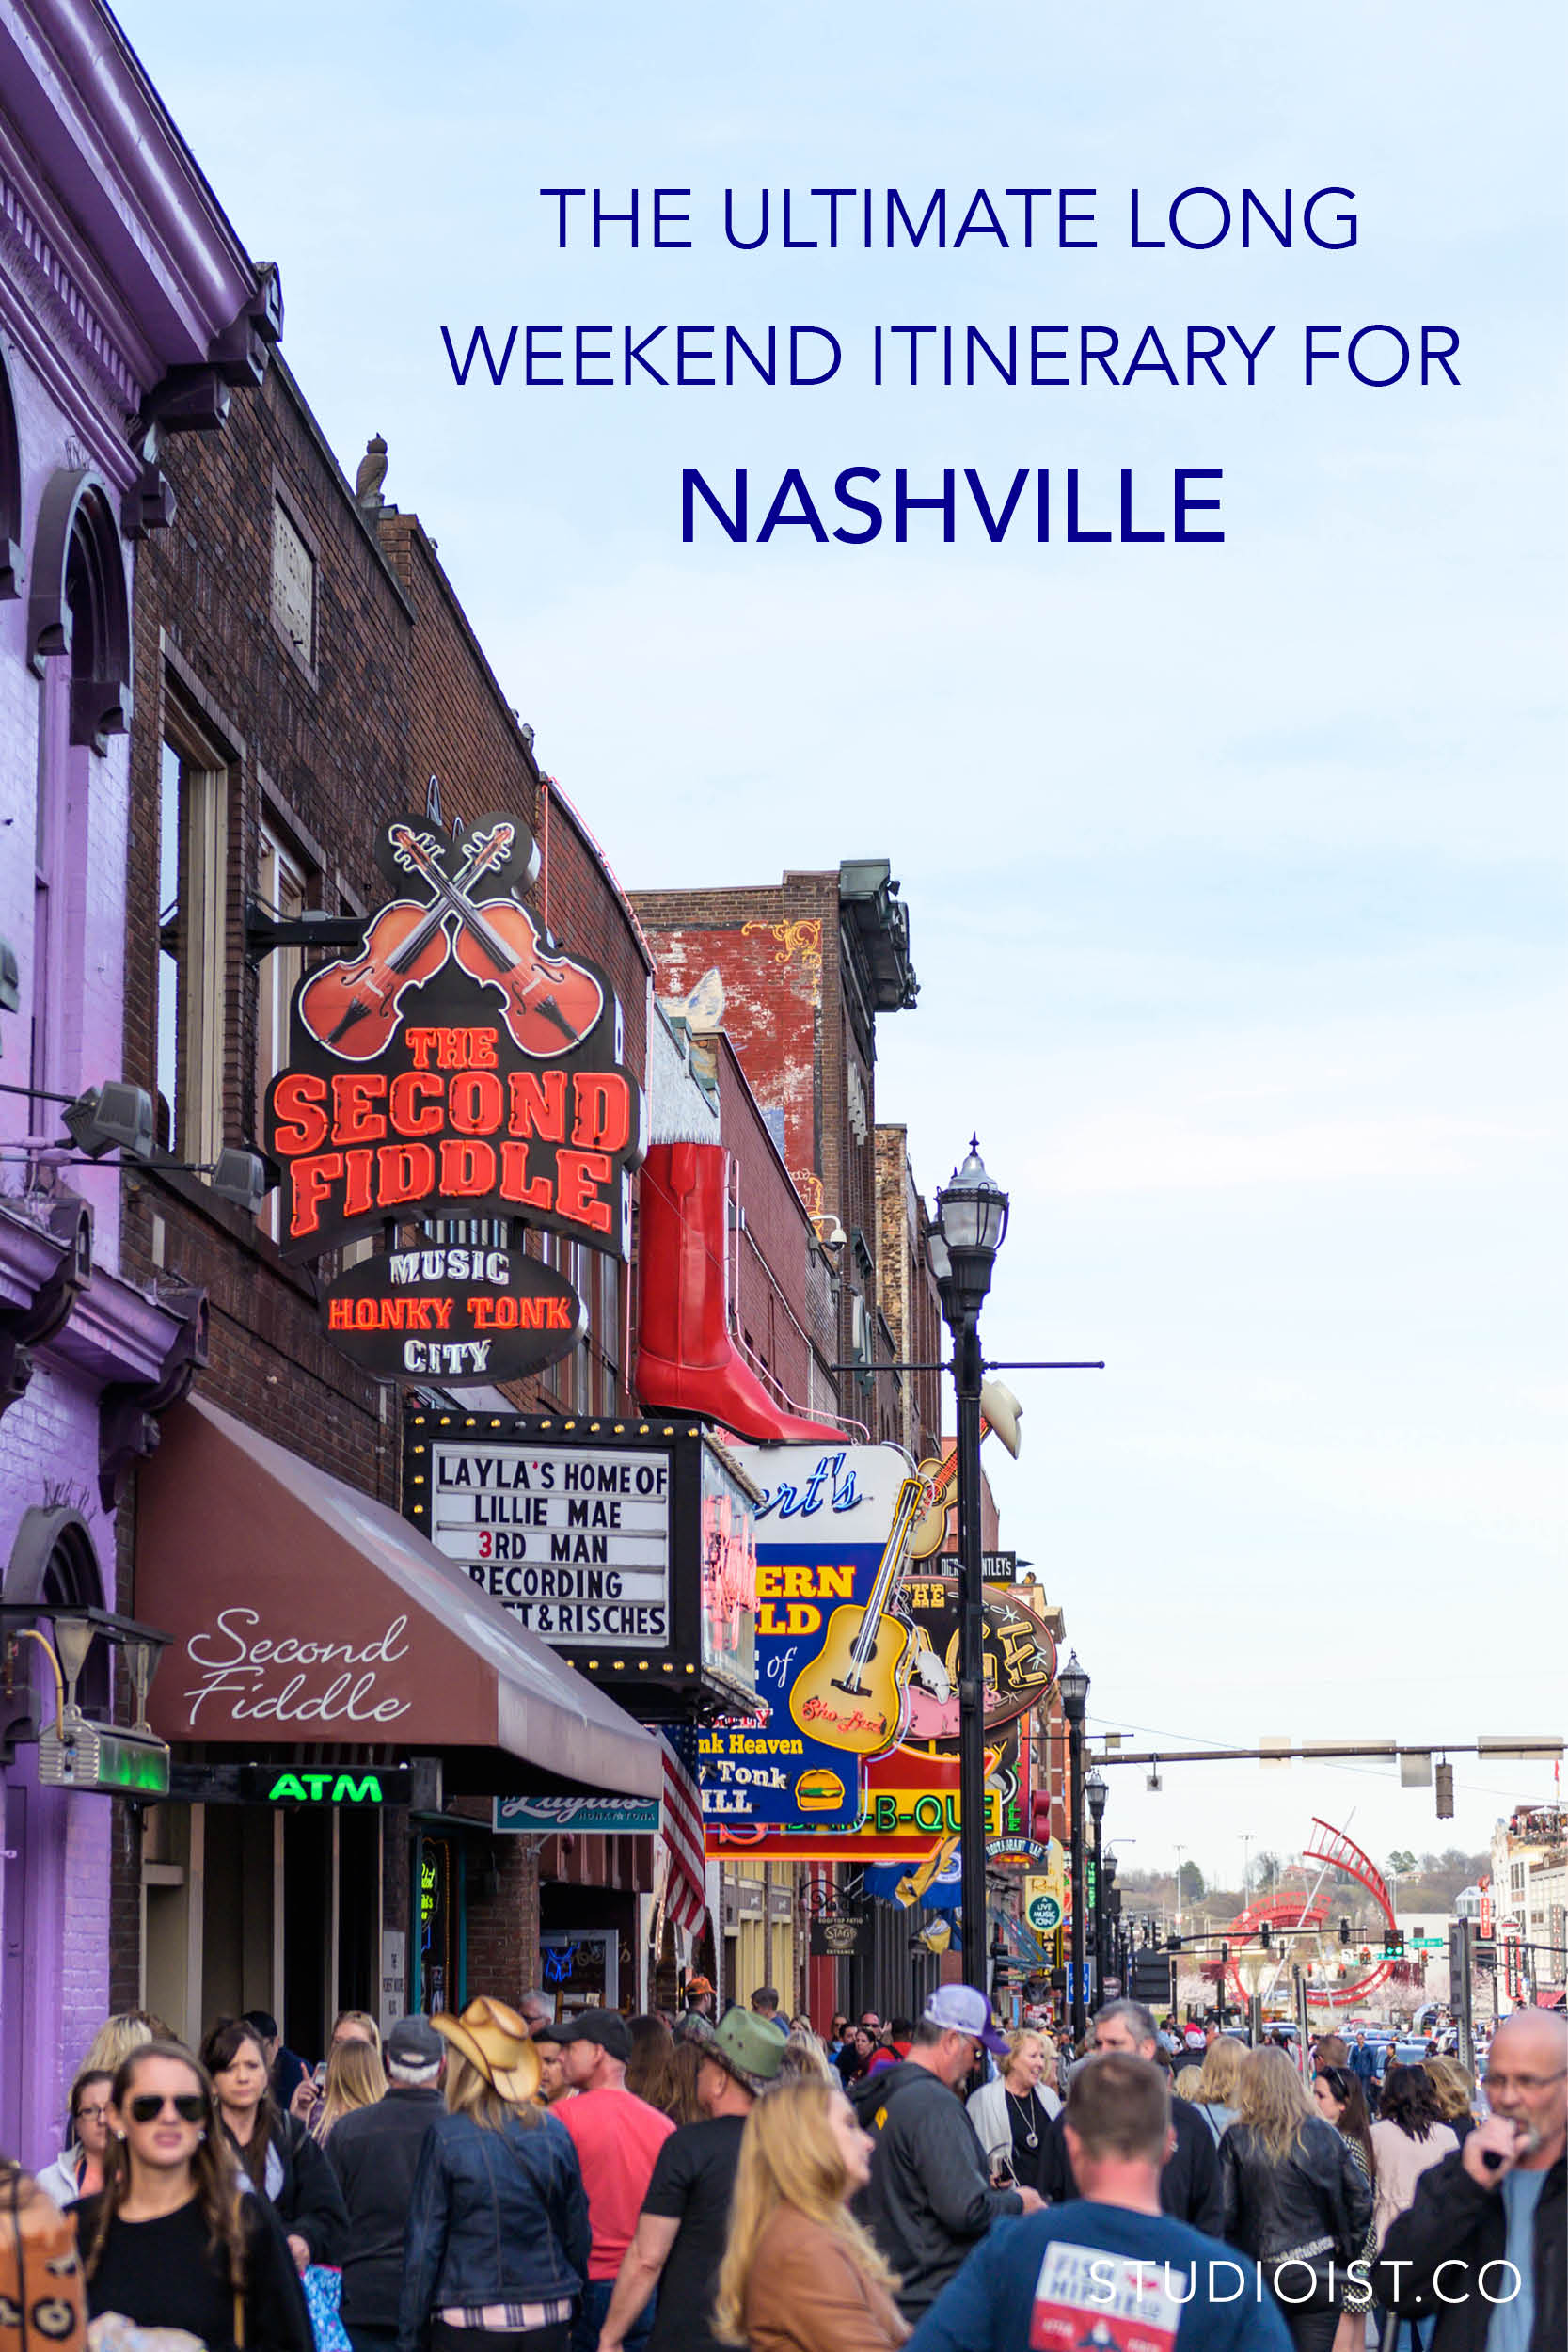 Studioist_Pinterest Design Travel_Nashville 72 Hour Itinerary2.jpg